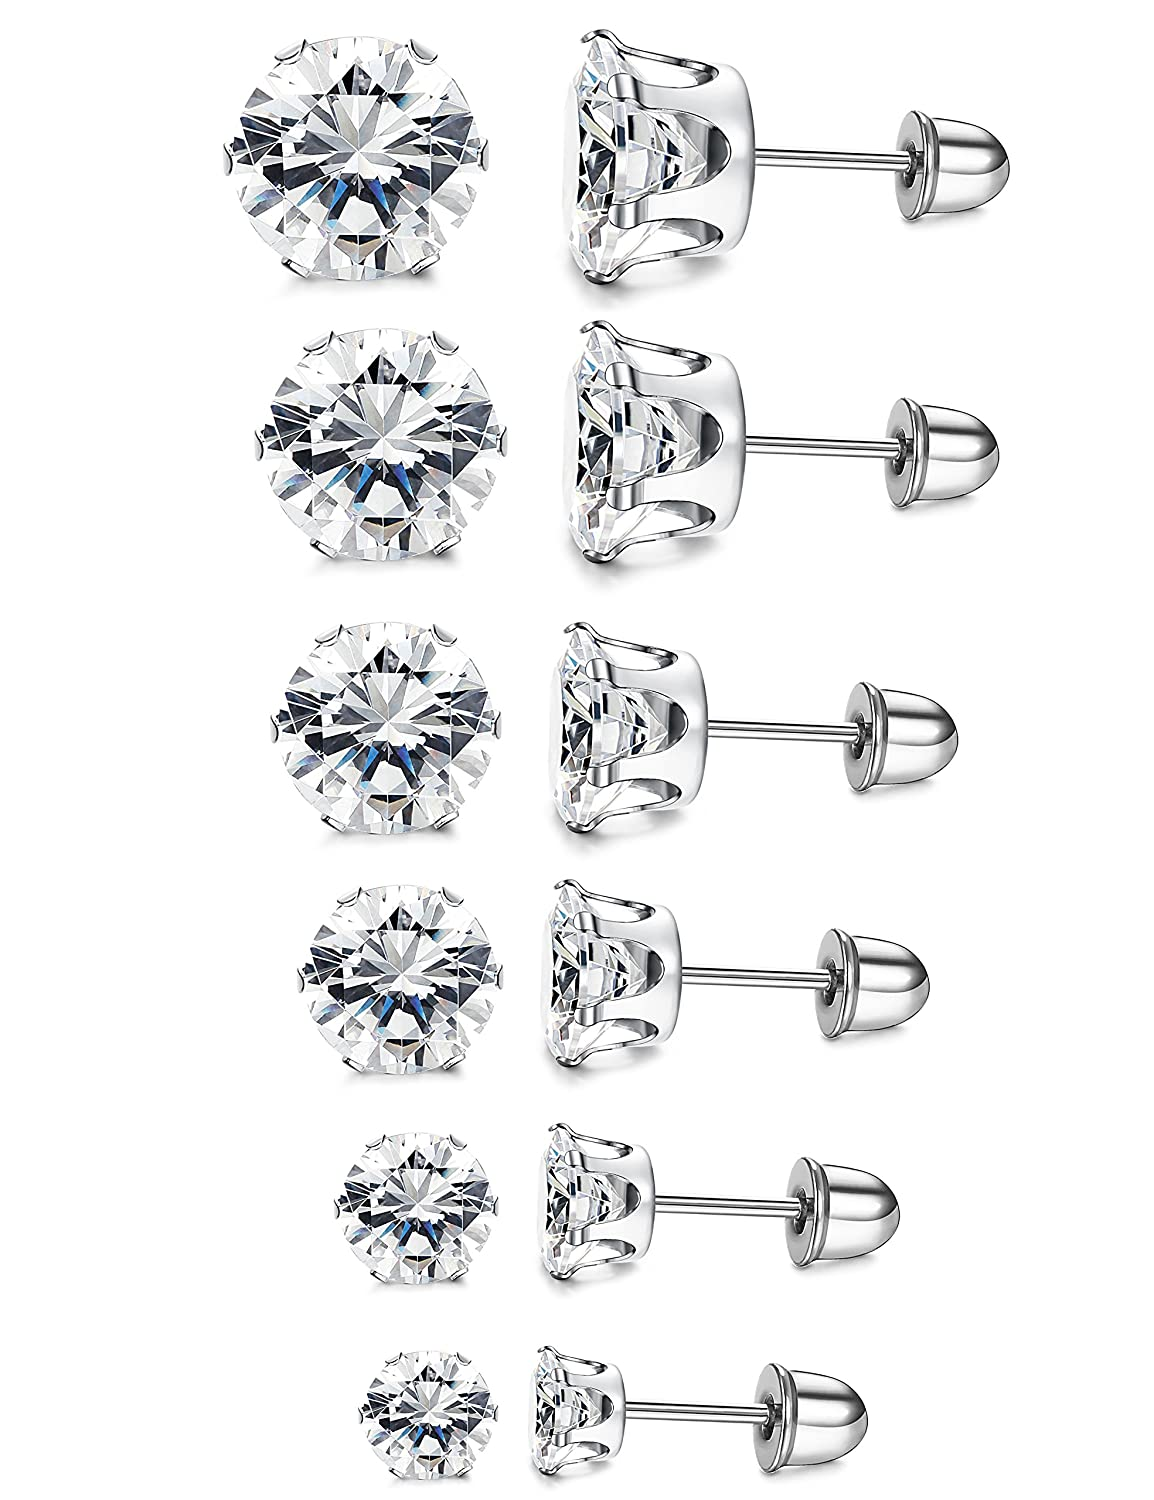 LOYALLOOK 6 Pairs Stainless Steel Clear Cubic Zirconia Stud Earring Ear Piercings for Women Girls 3-8mm TI121501